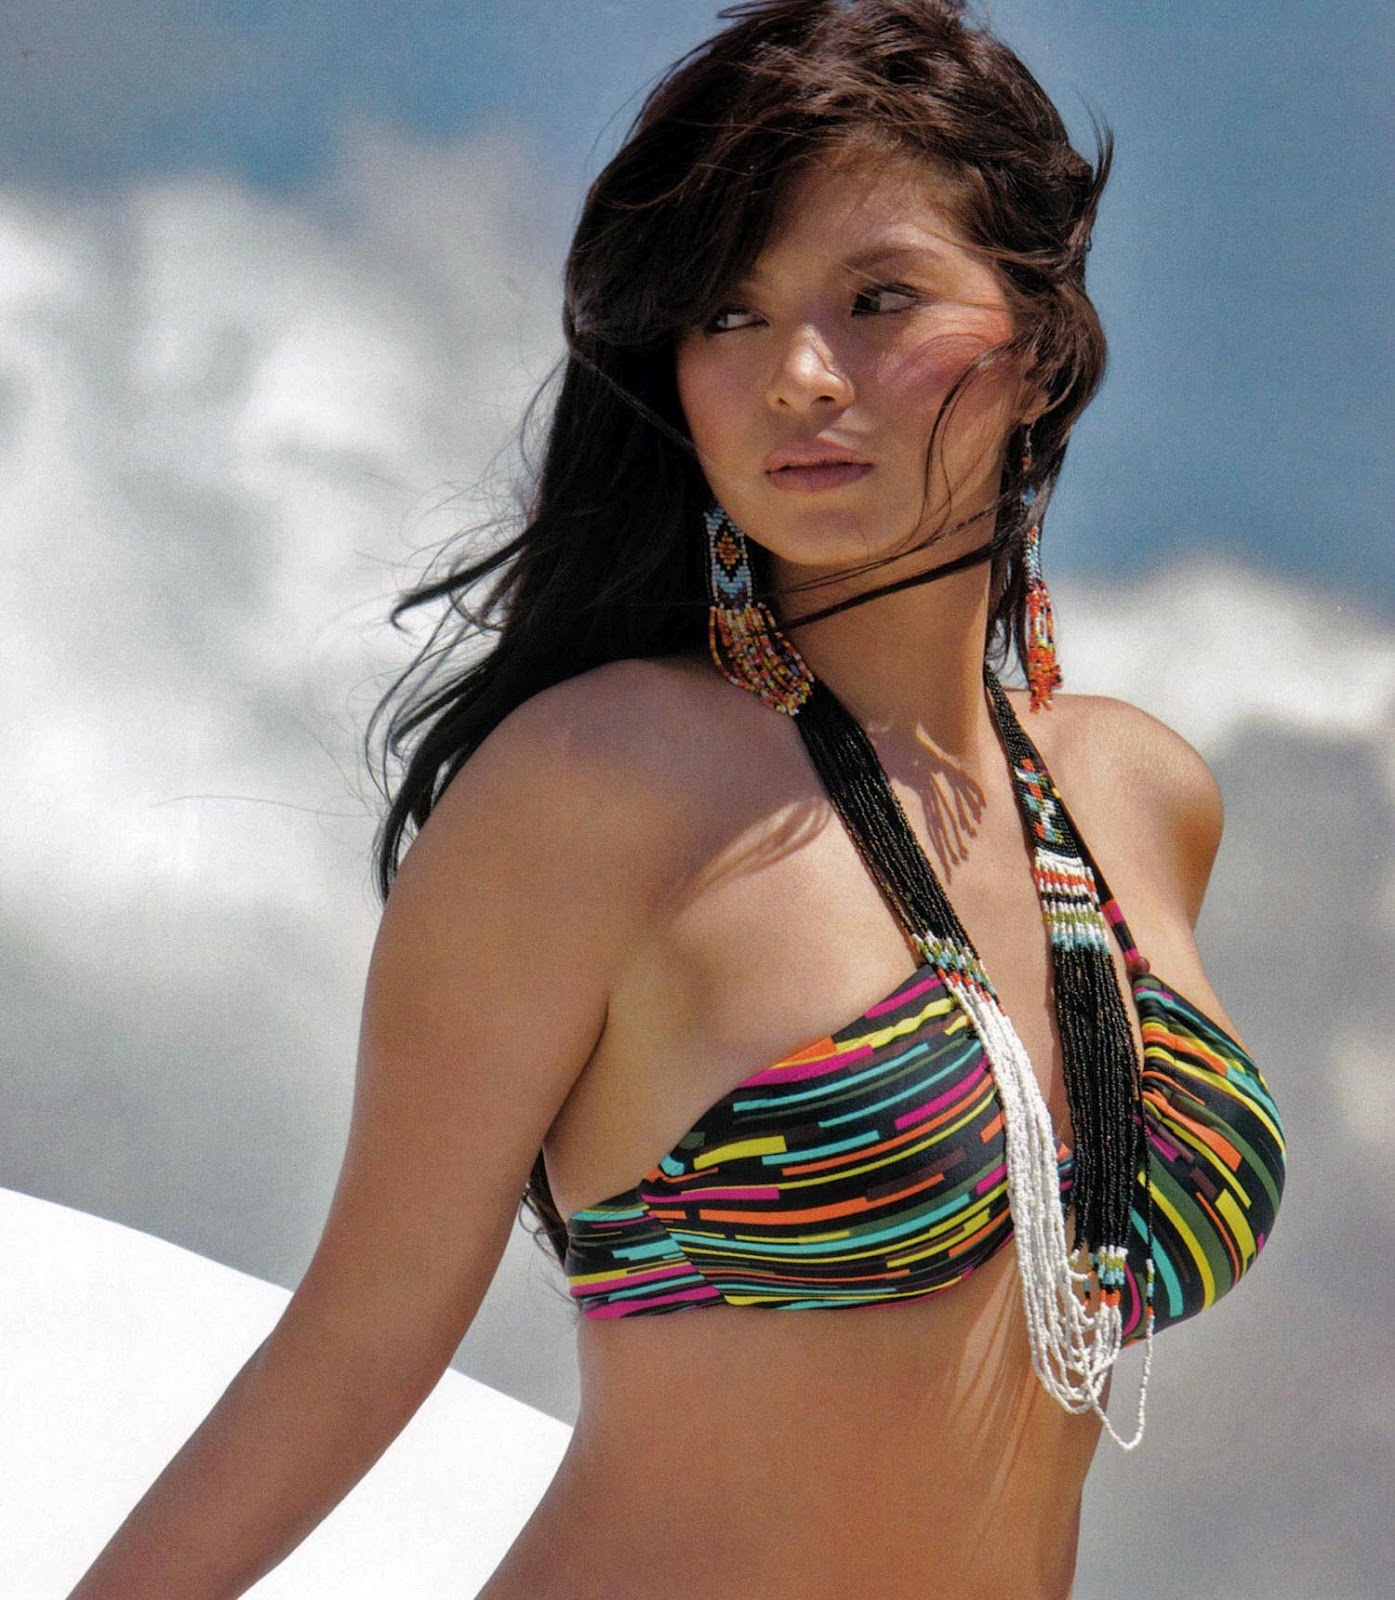 angel locsin sexy fhm bikini photos 01